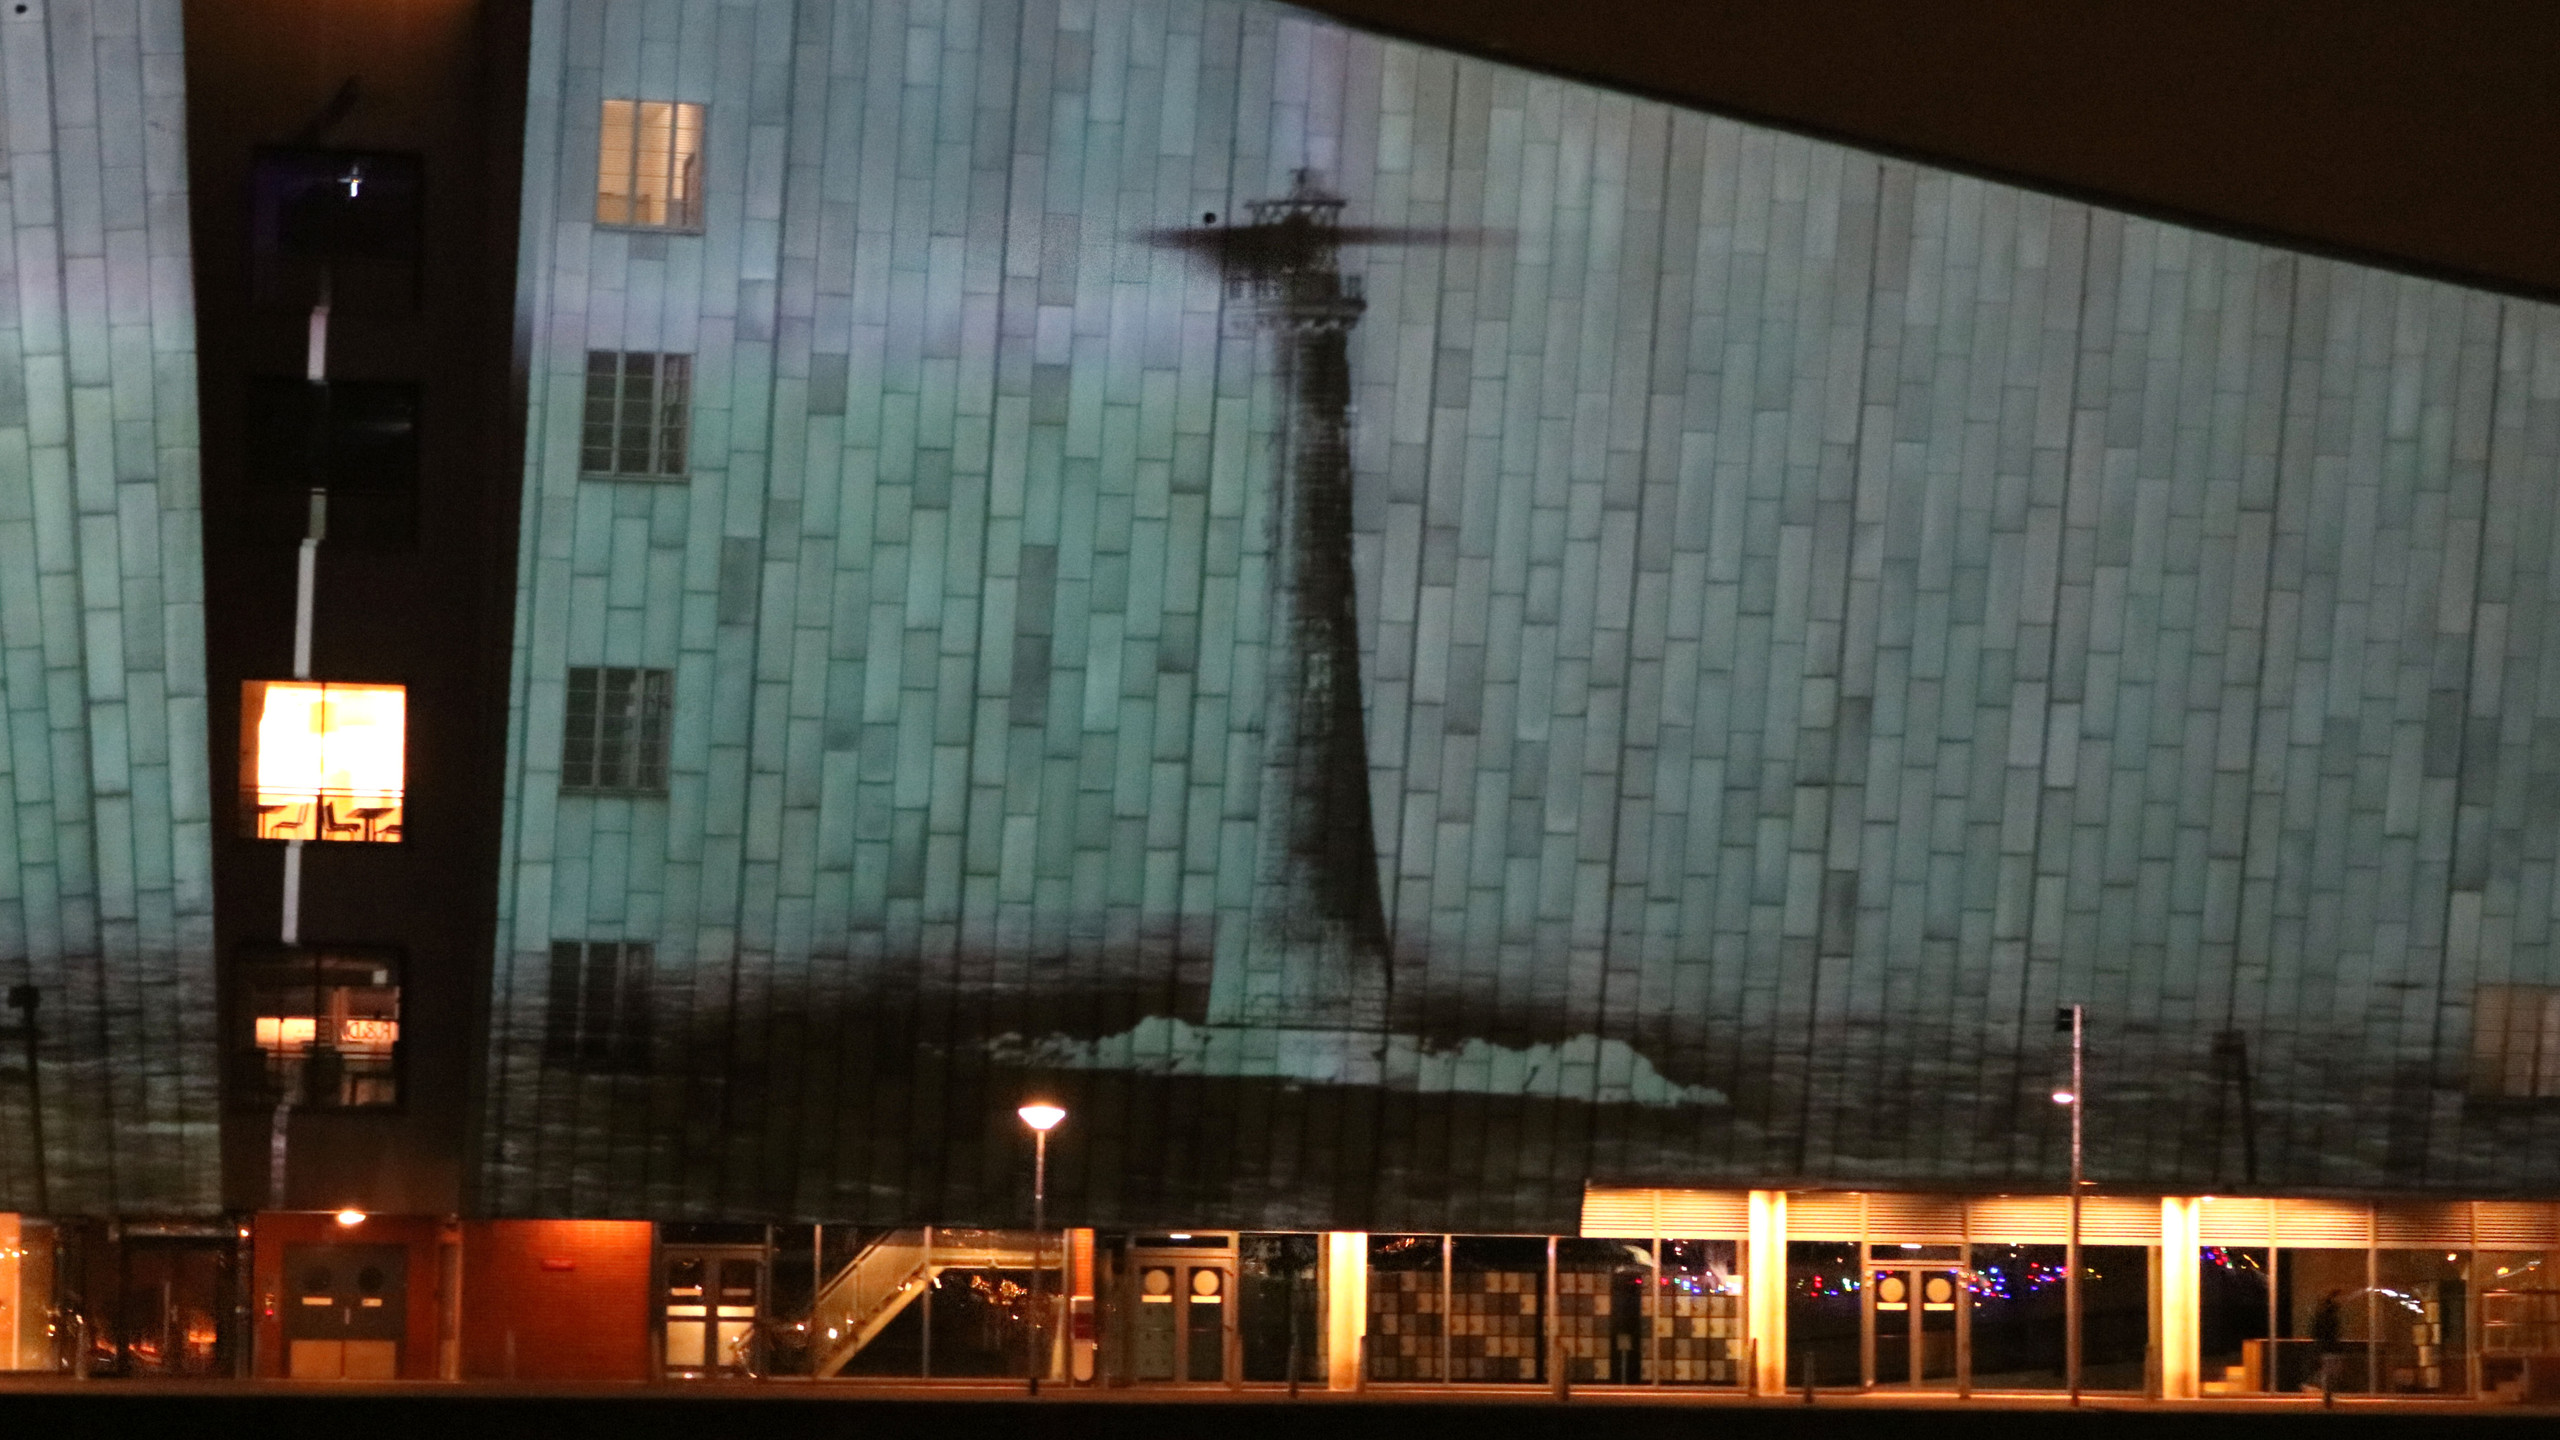 Light projected on the Science Museum. - Rona Lee